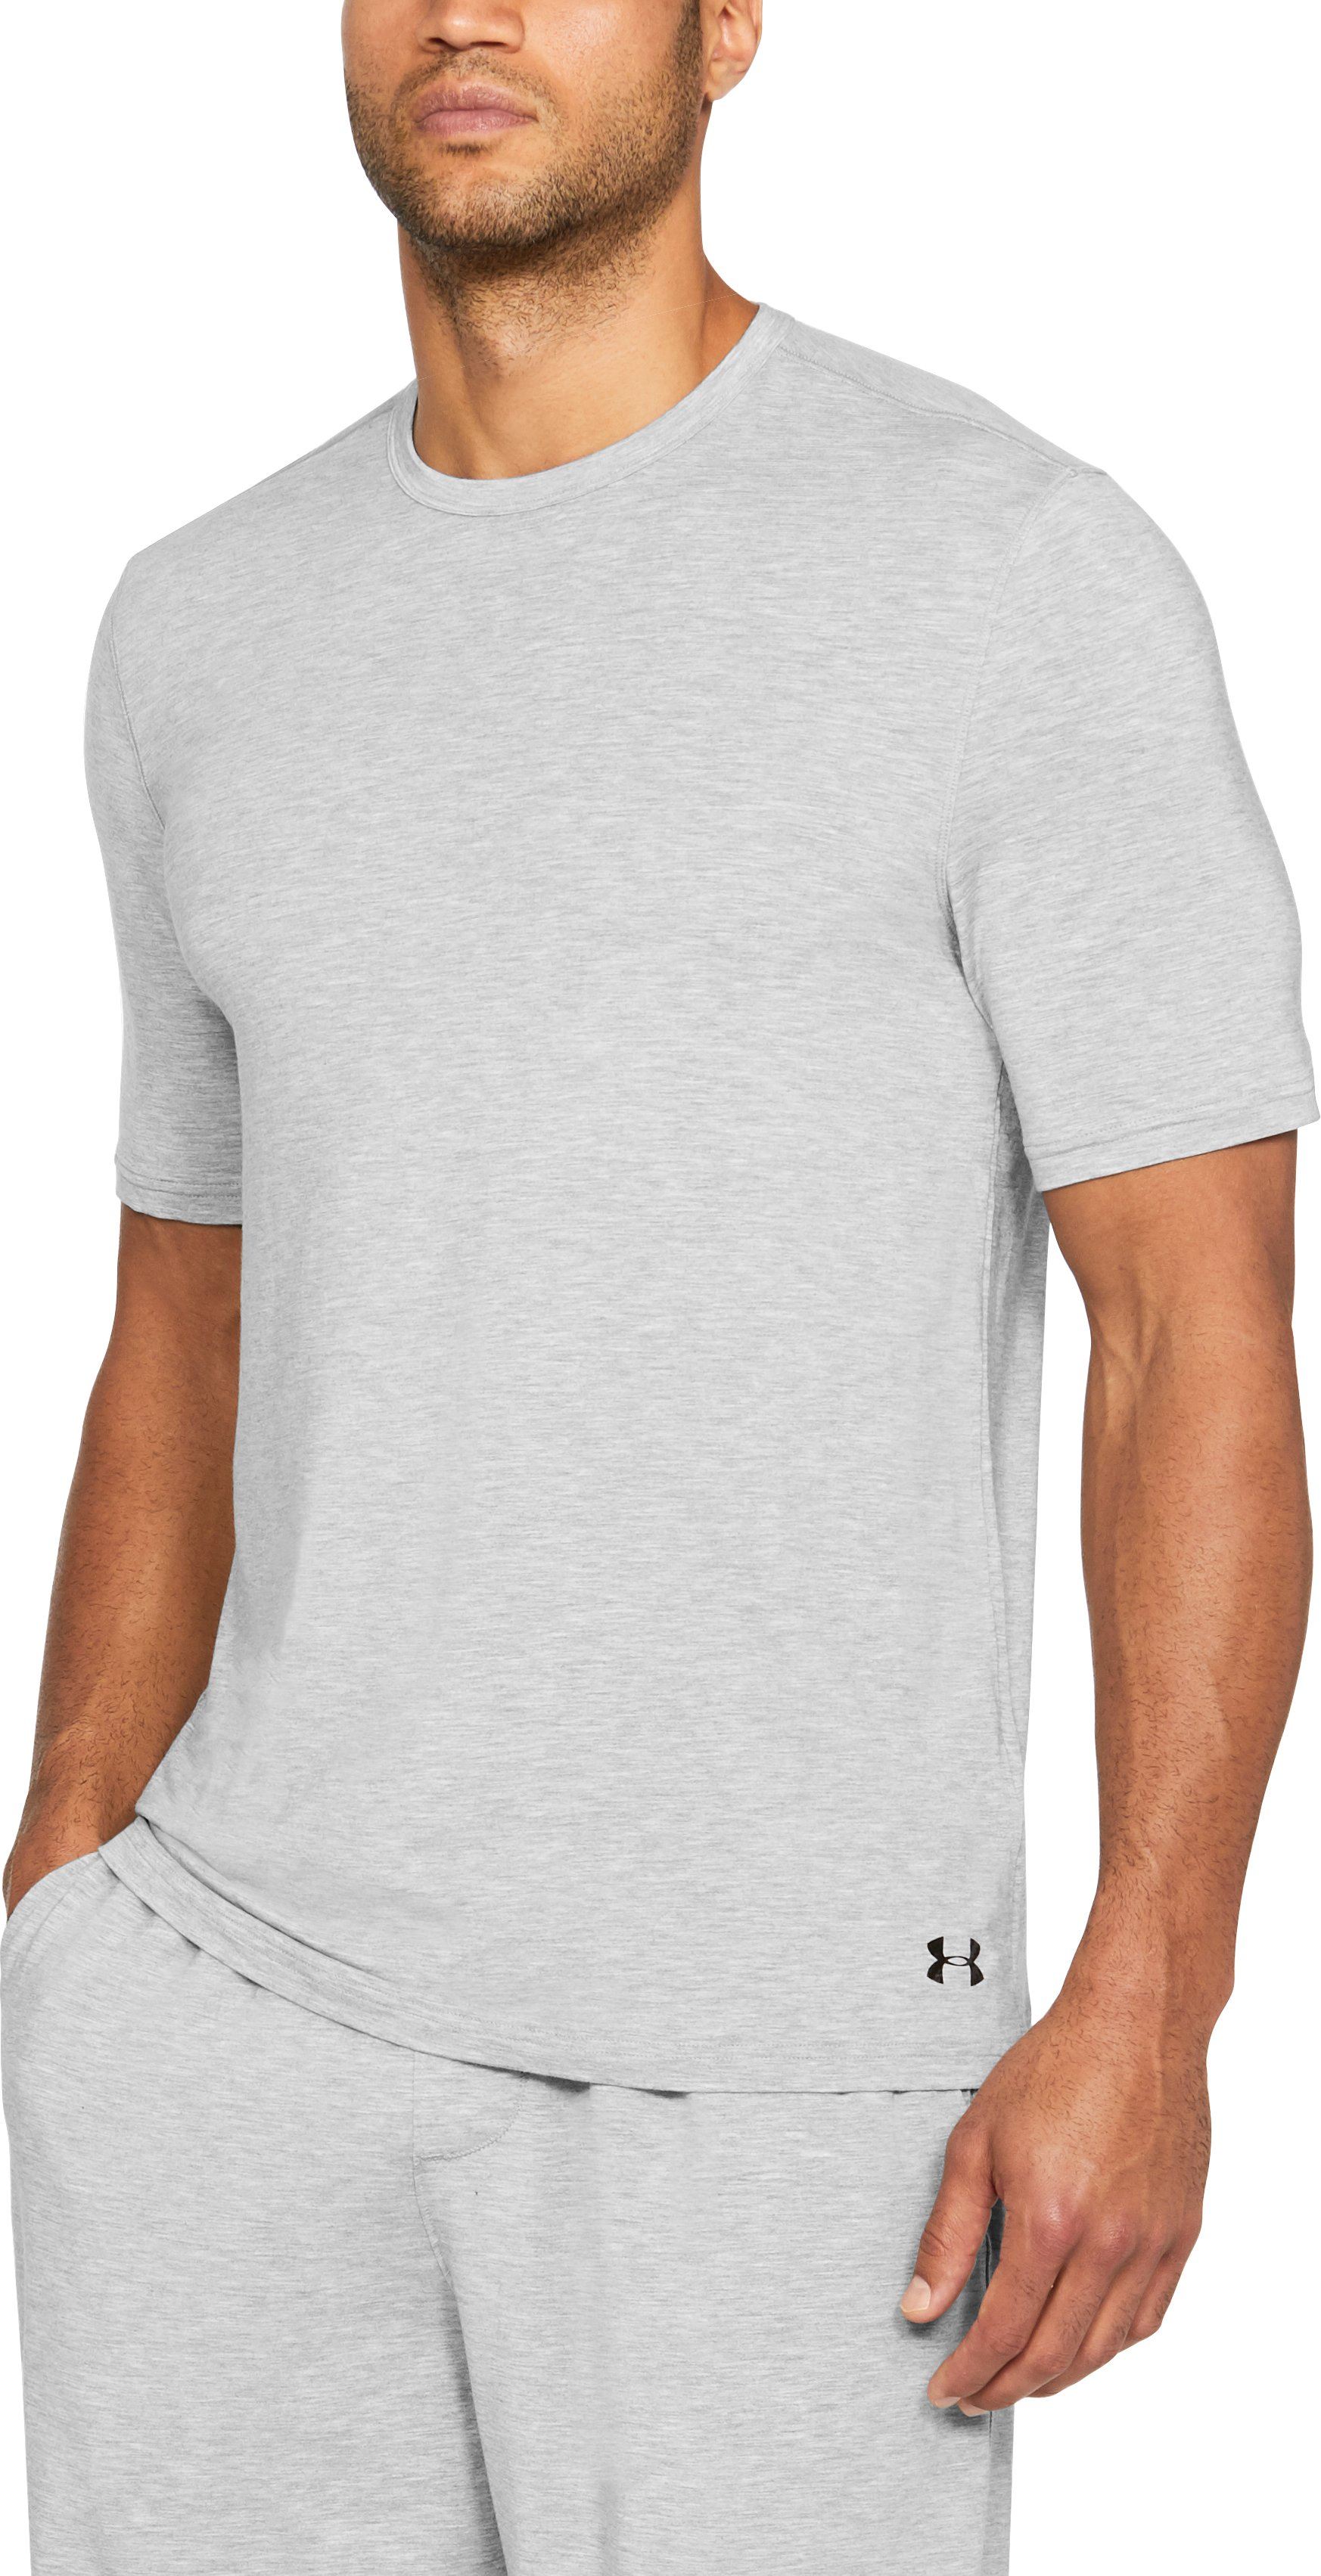 Men's Athlete Recovery Ultra Comfort Sleepwear Short Sleeve, True Gray Heather